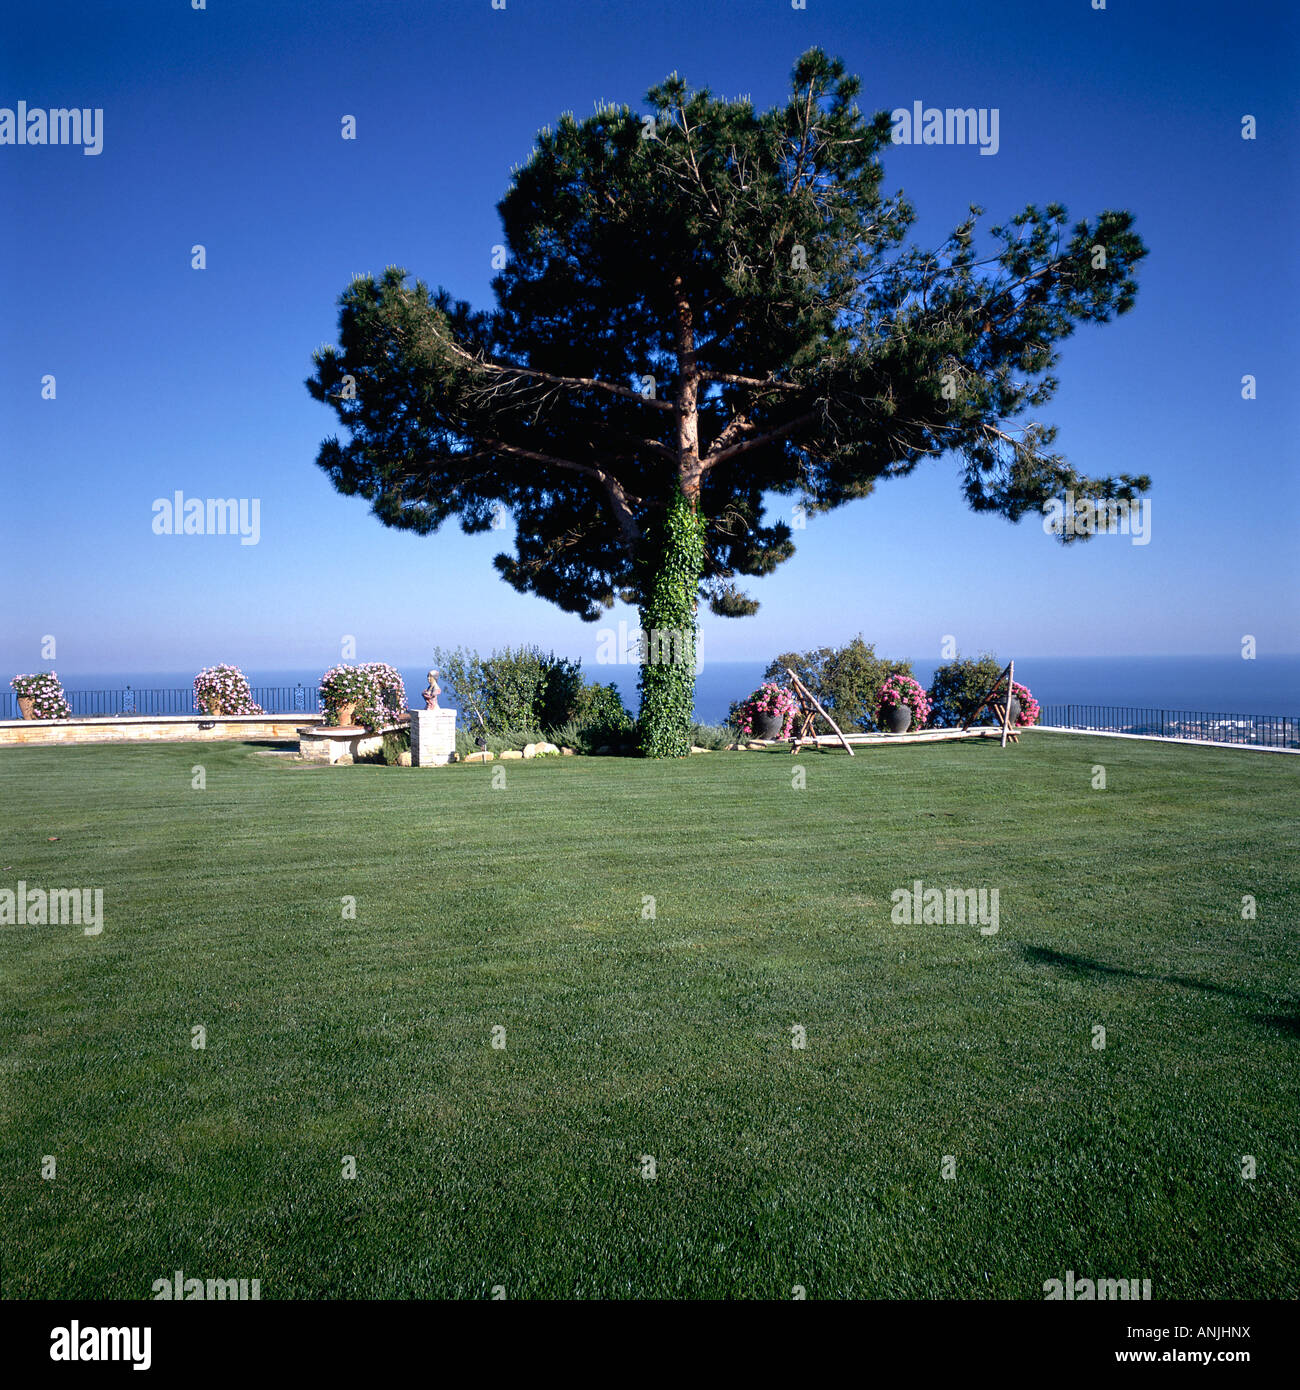 View of a tree at the periphery of a lawn - Stock Image